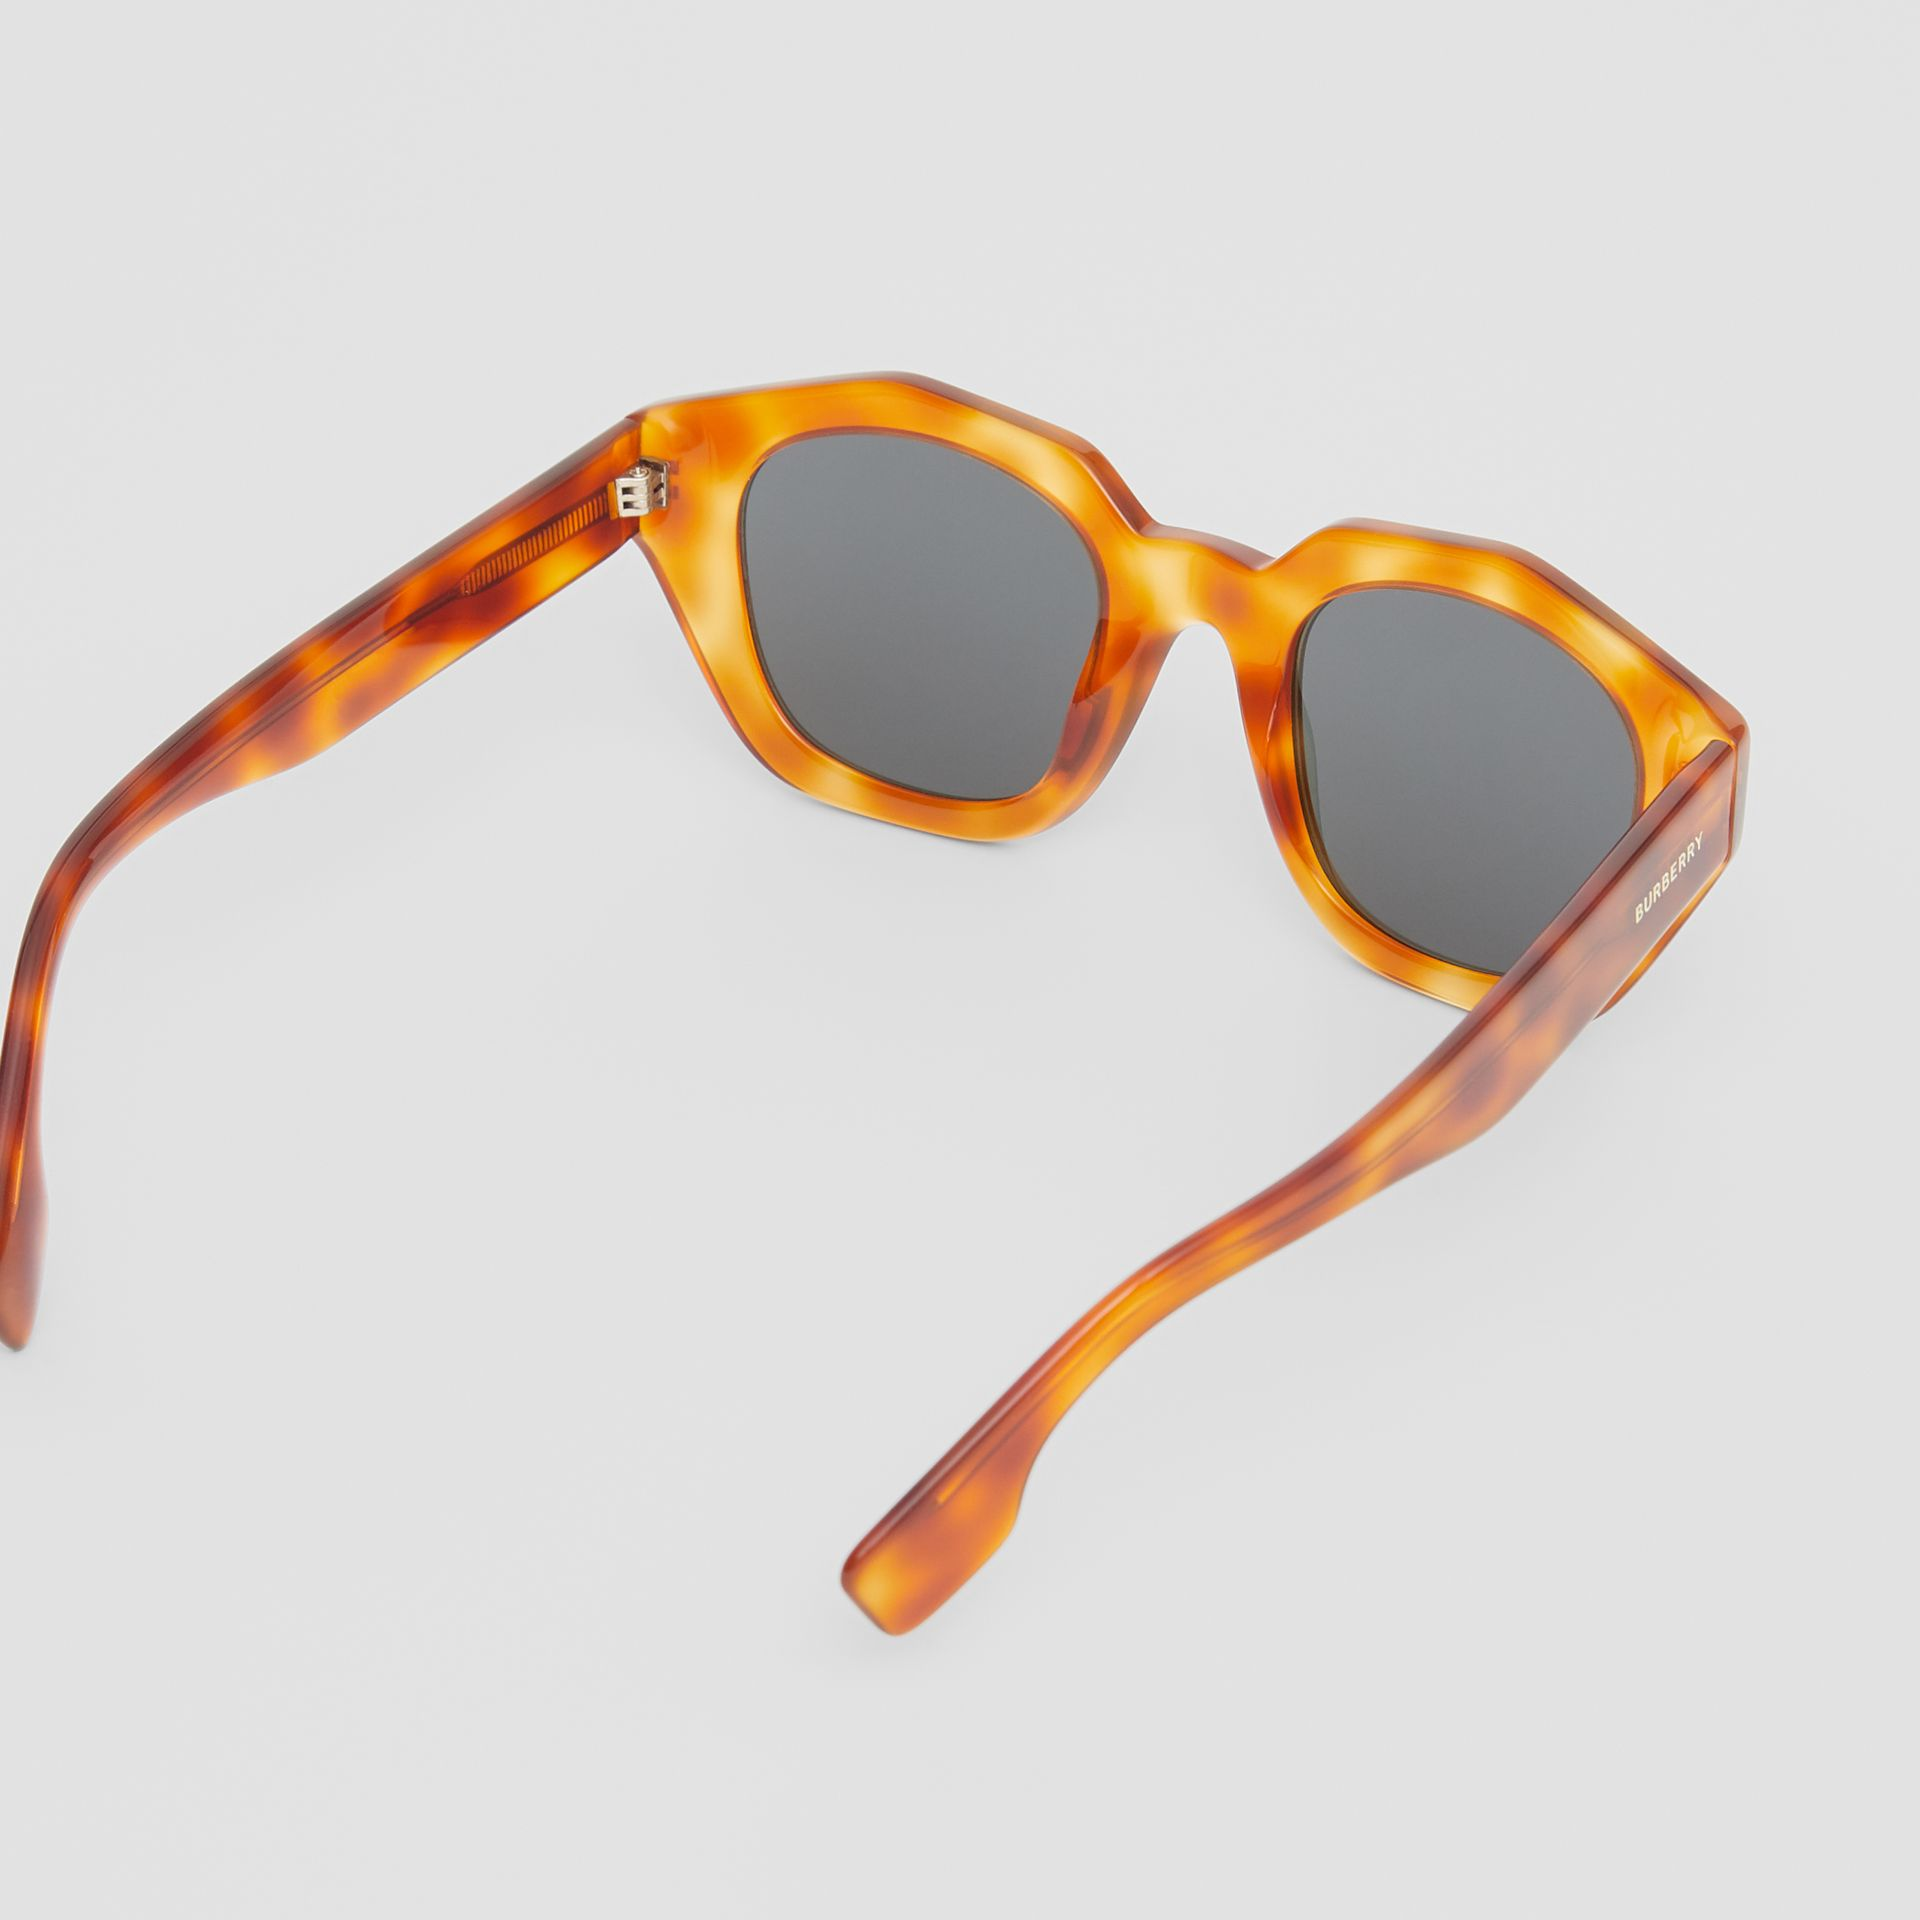 Geometric Frame Sunglasses in Tortoiseshell Amber - Women | Burberry United Kingdom - gallery image 4